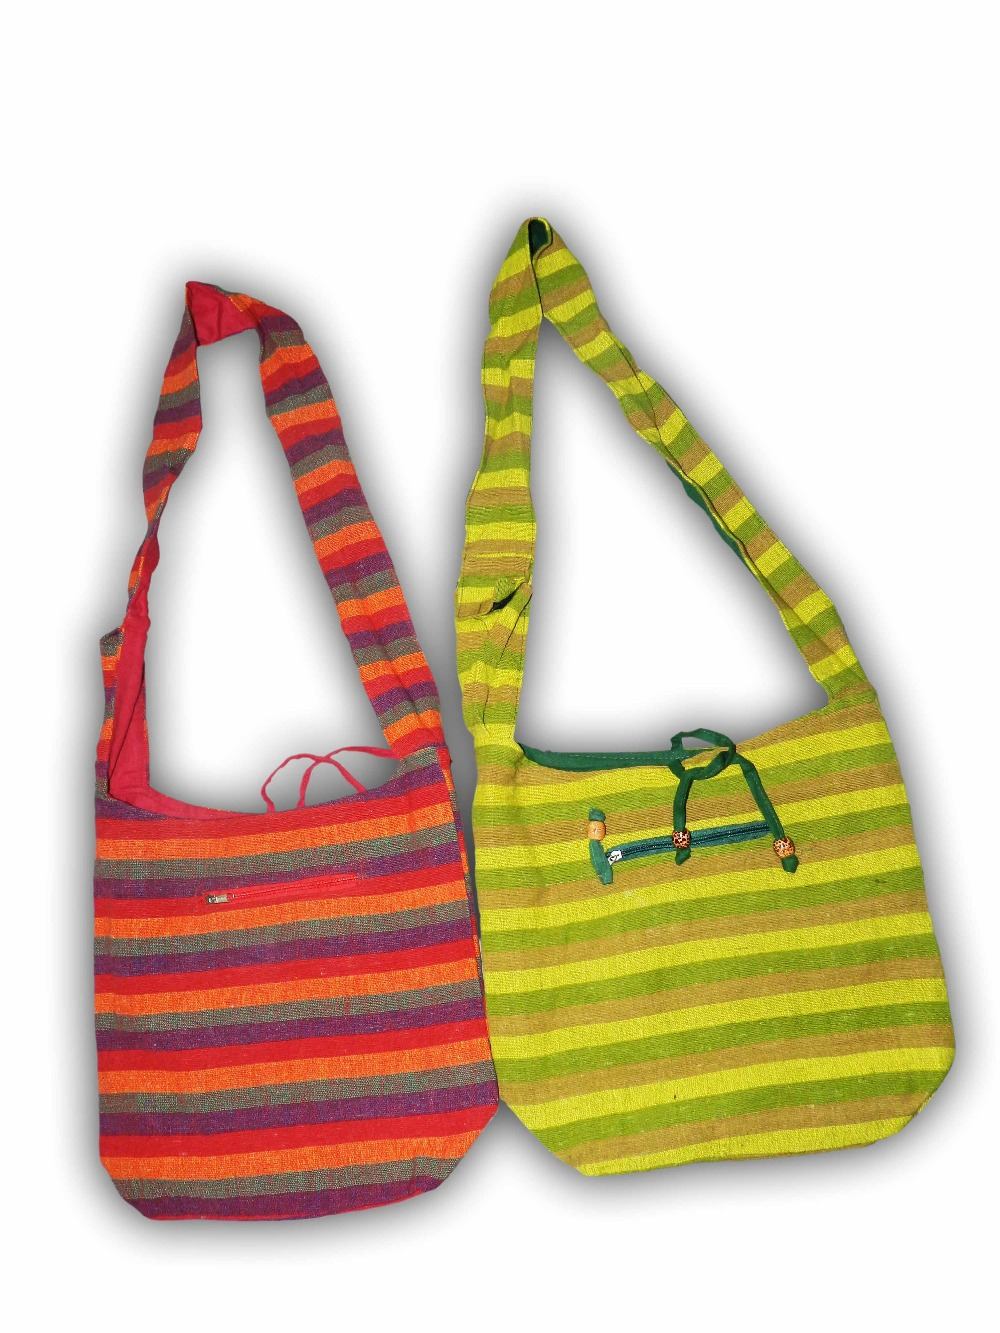 hand bags for women,hand crochet bags